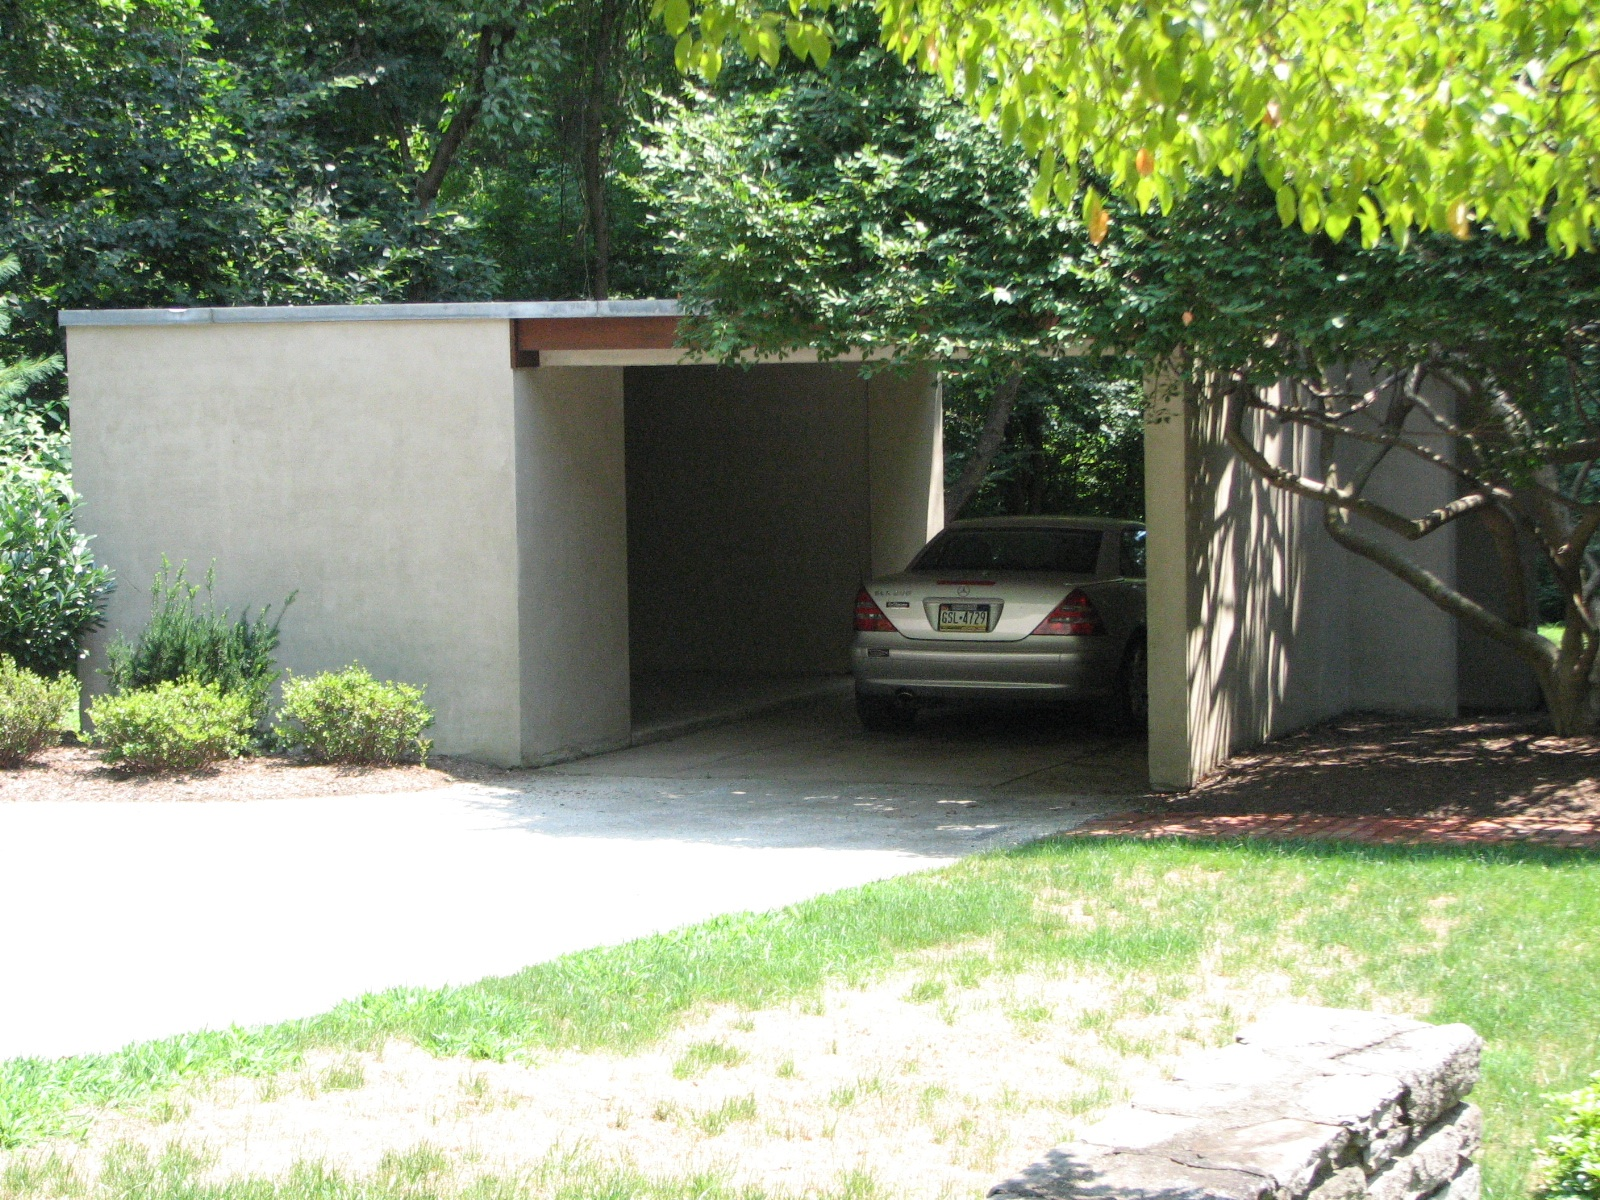 sites-planphilly-com-files-kahn_carport-jpg